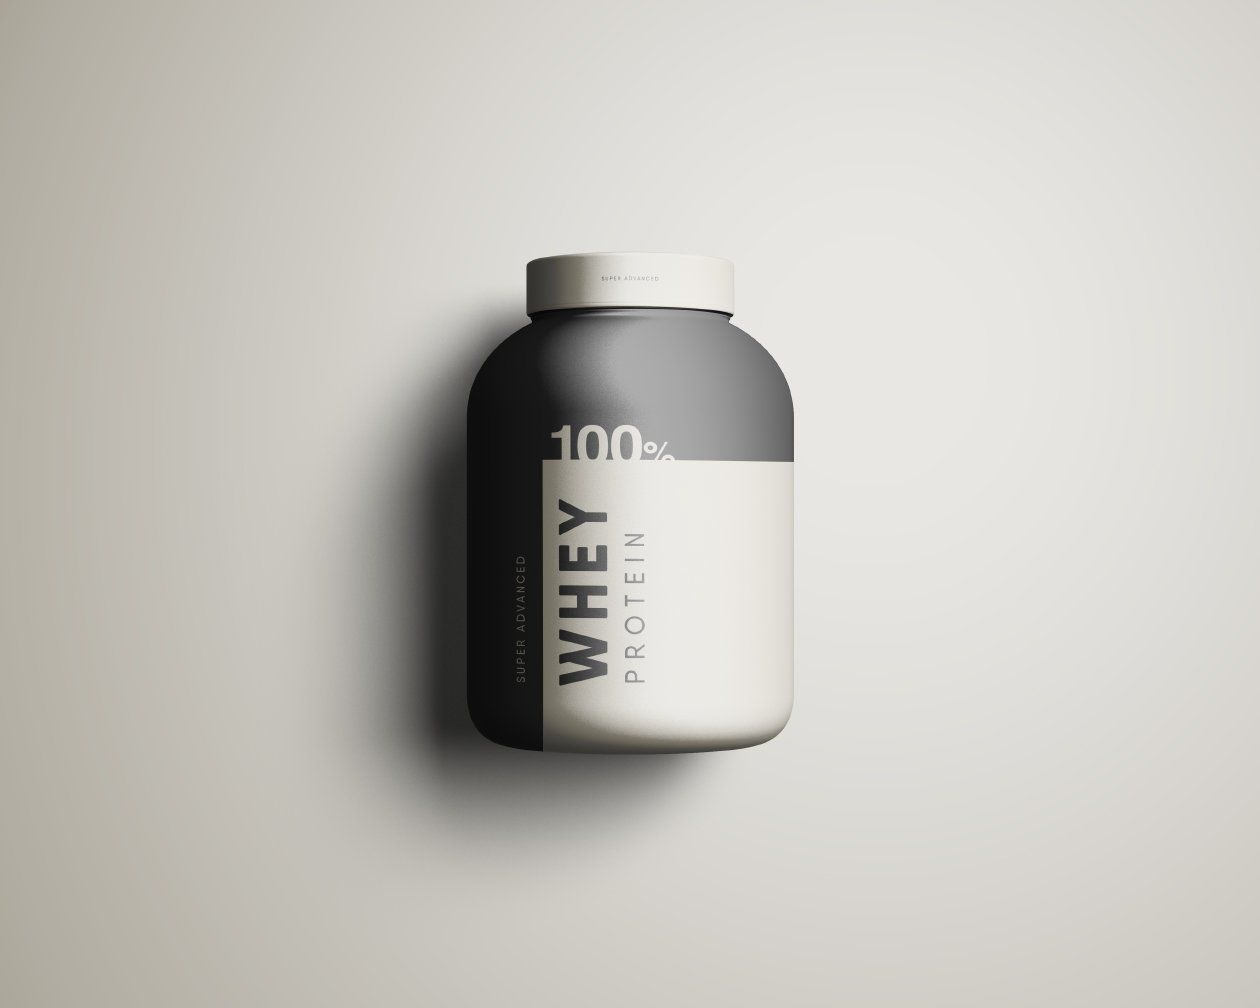 Free Whey Protein Jar Mockup Psd 85 1 Mb Graphic Pear Free Photoshop Protein Bottle Cosmetic Packaging Design Whey Protein